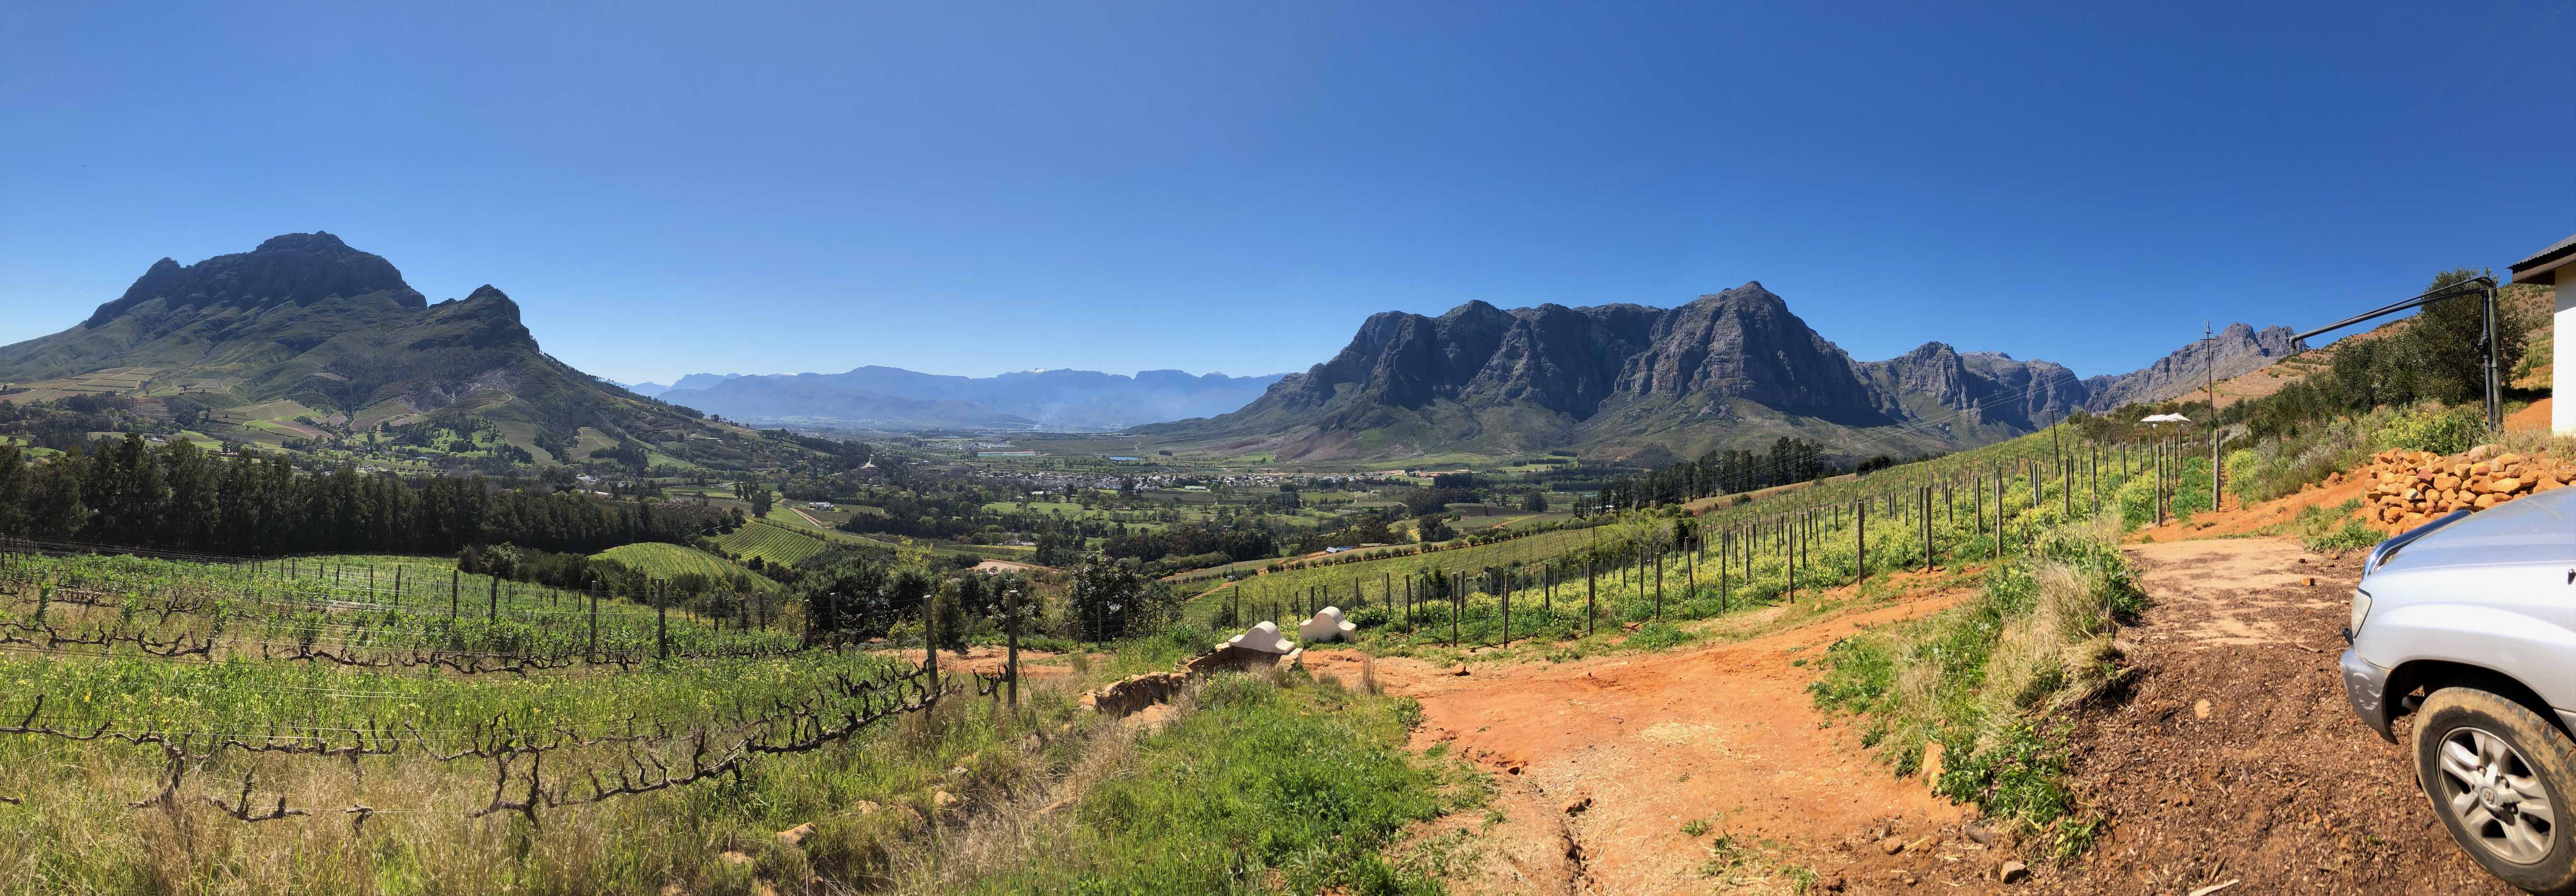 South Africa